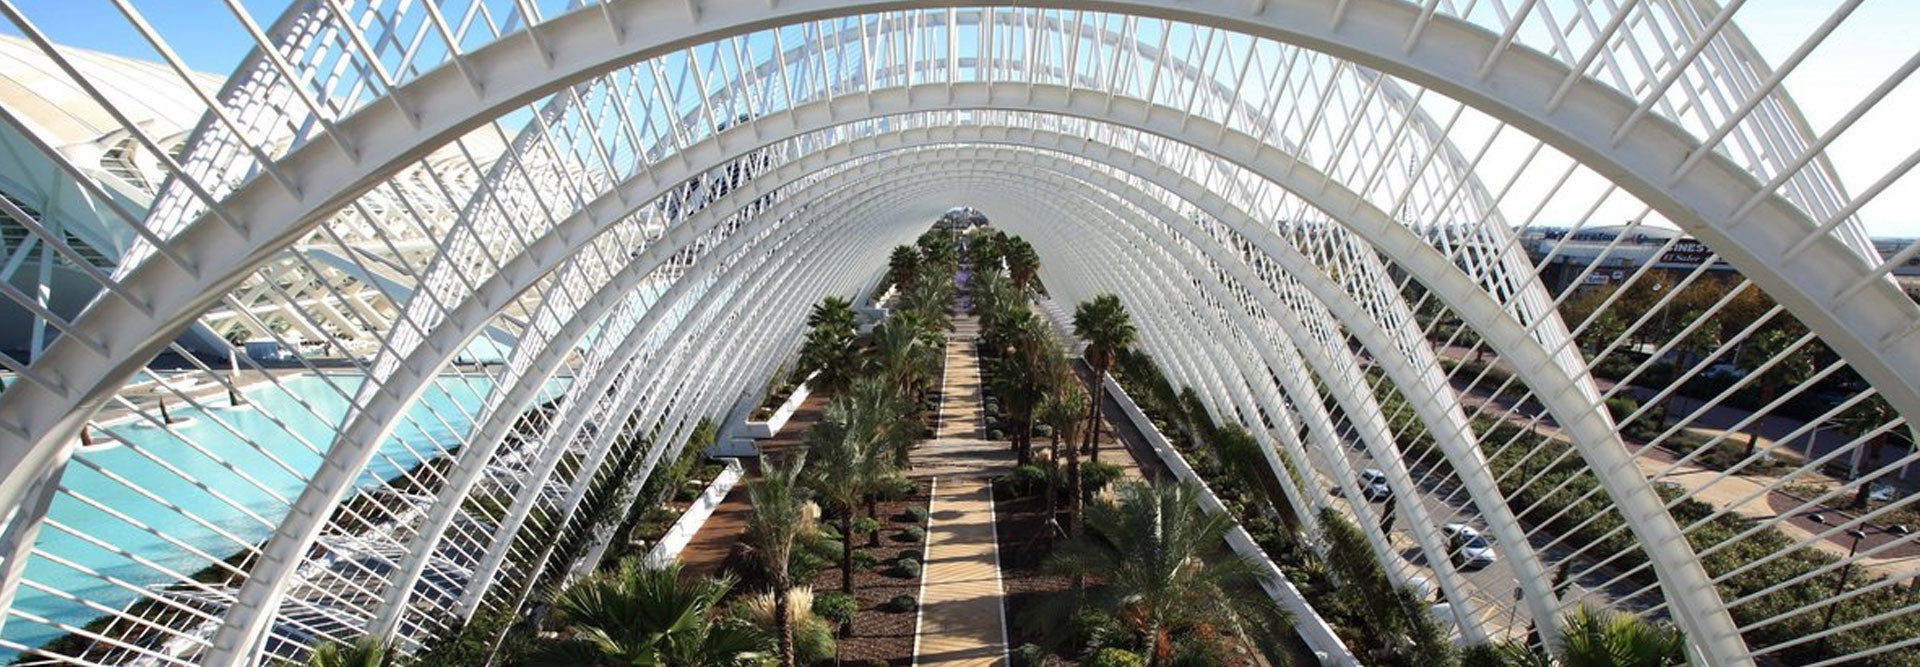 The-umbracle-Valencia-experiences-and-gateways